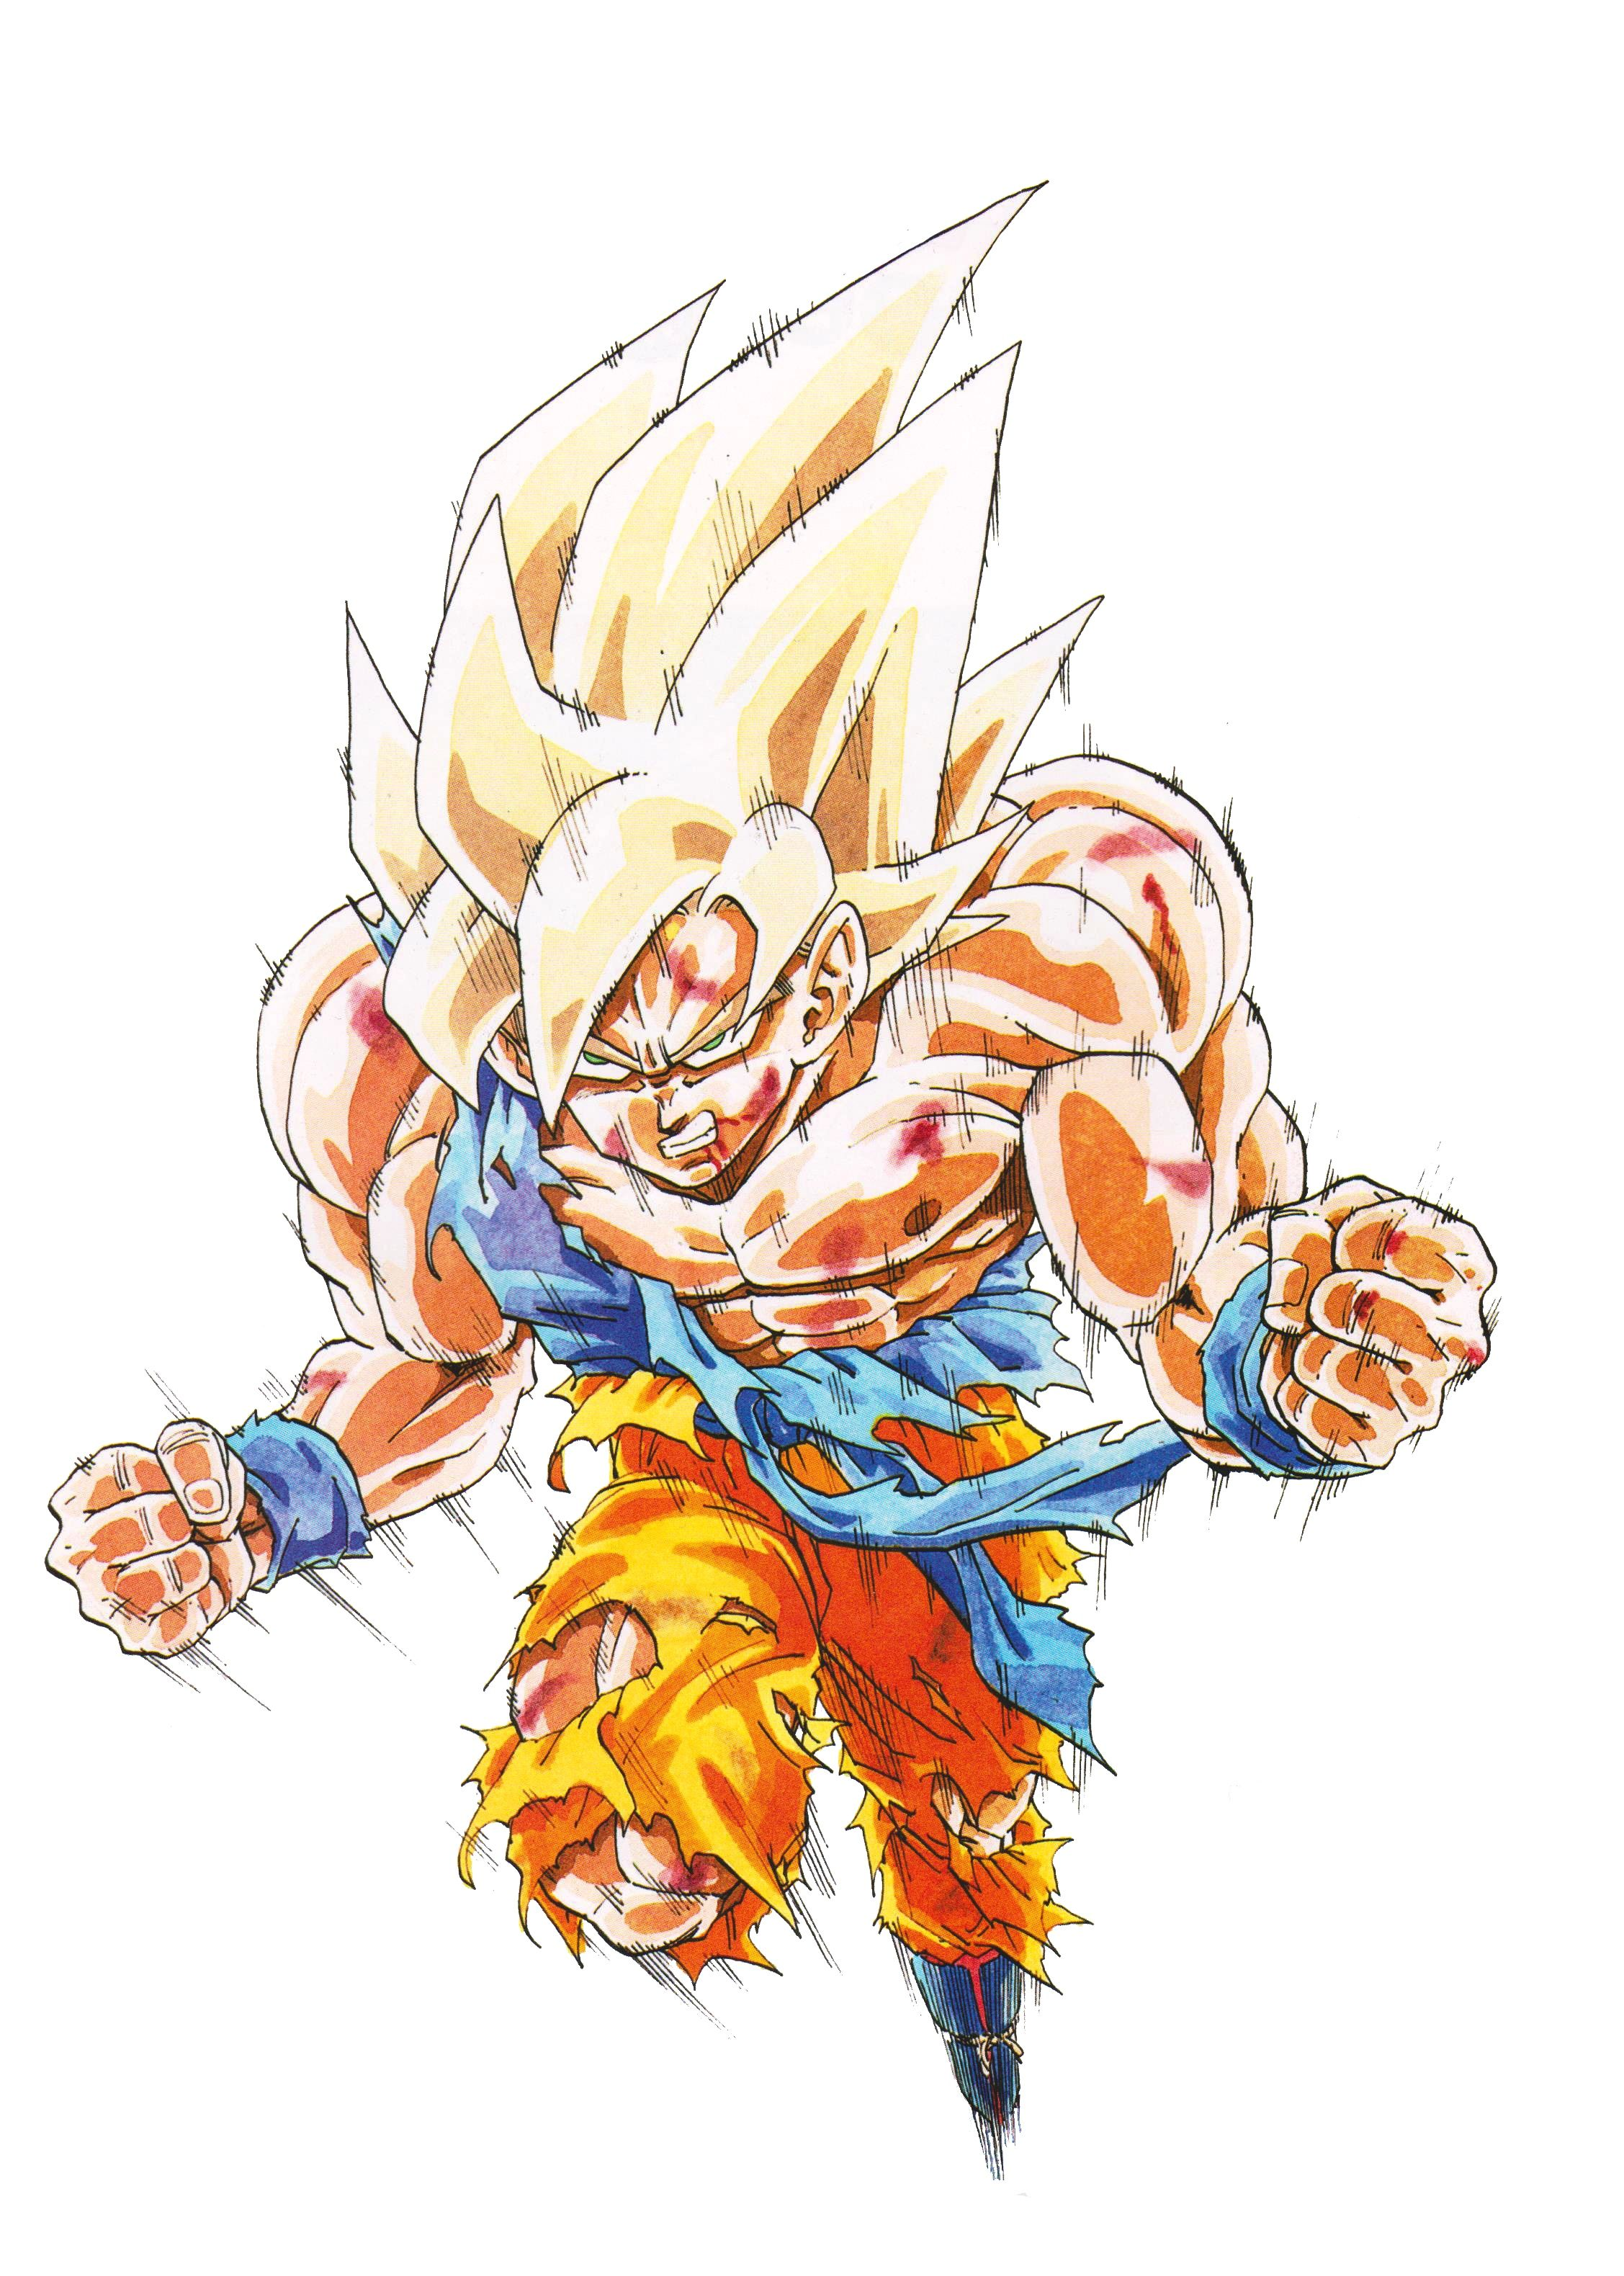 Akira Toriyama Toei Animation Dragon Ball Super Saiyan Goku Dragon Ball Art Dragon Ball Dragon Ball Z